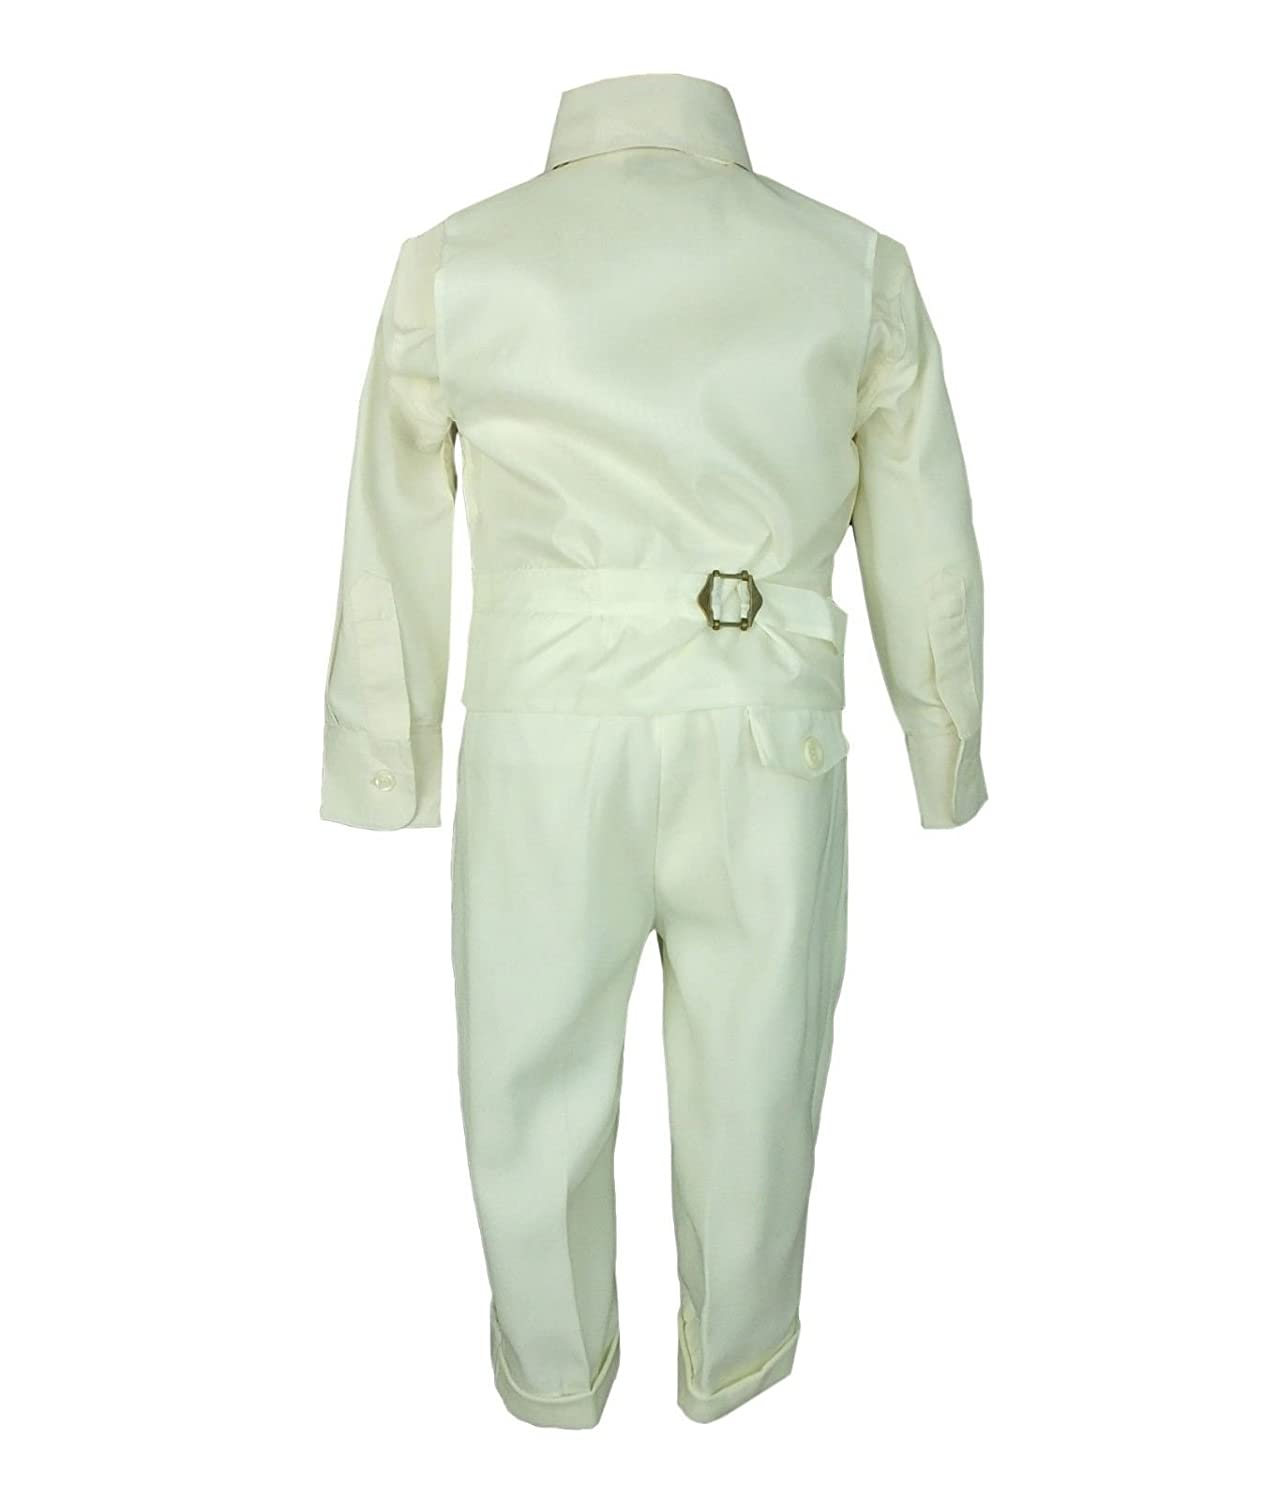 Baby Boys Ivory Christening Suit 4 Piece Baptism Outfit by Sebastian Le Blanc